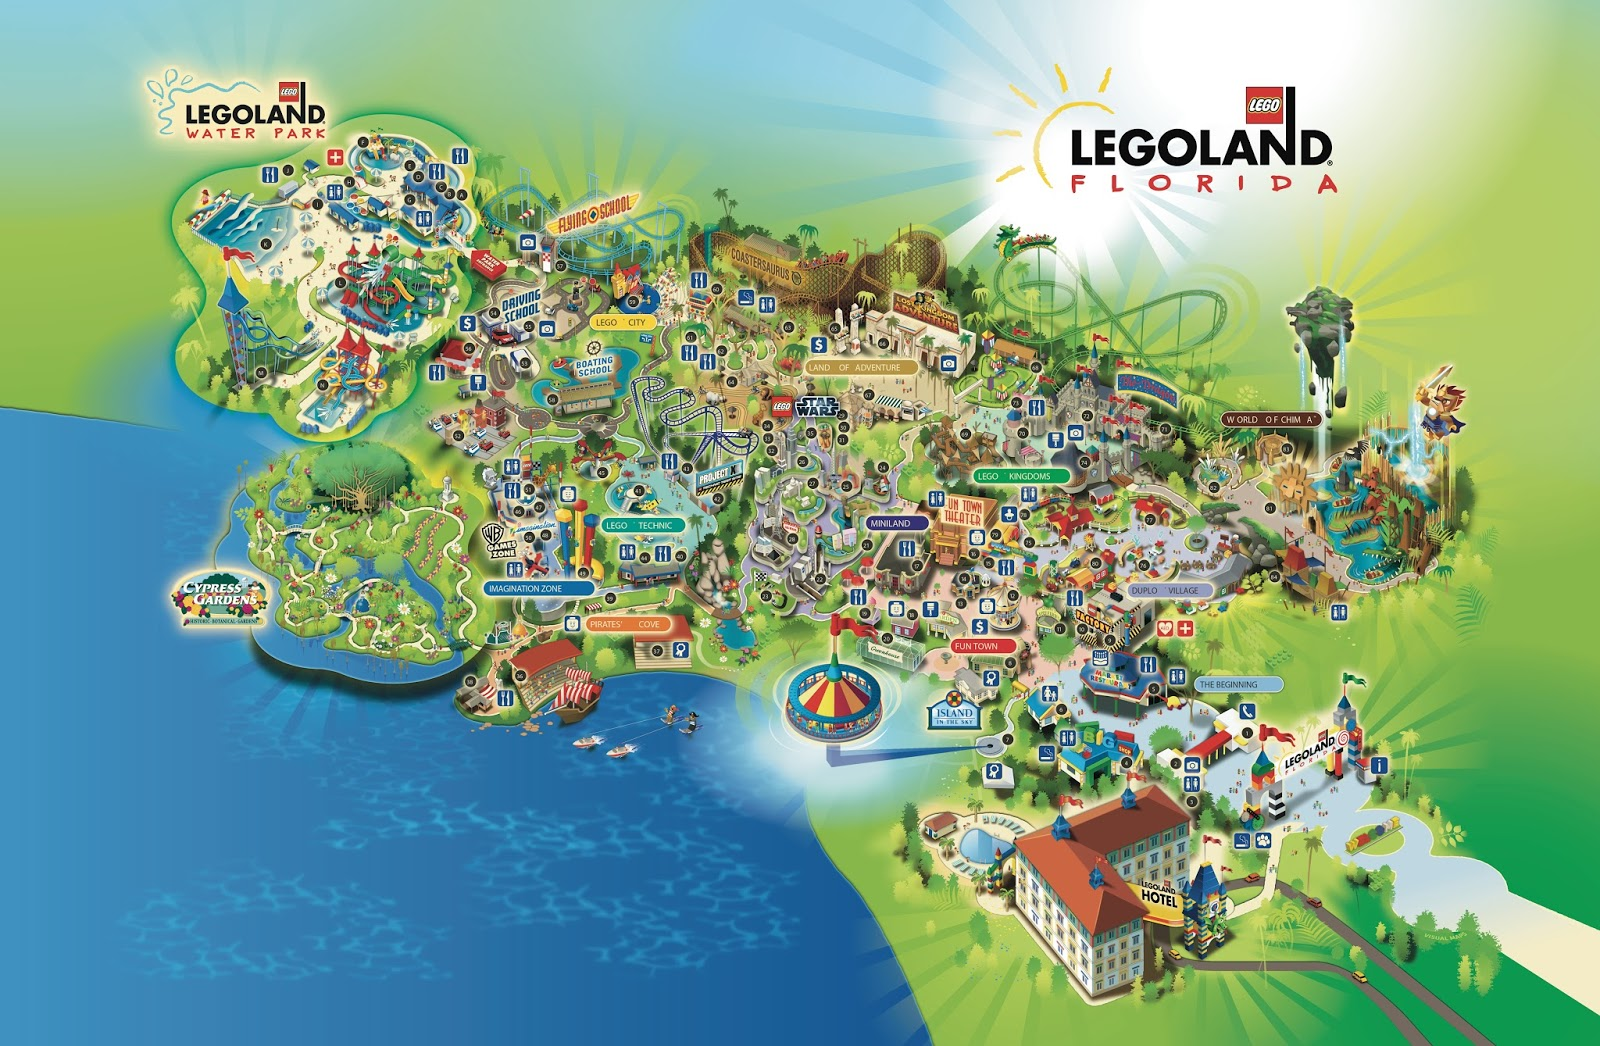 legoland florida map location